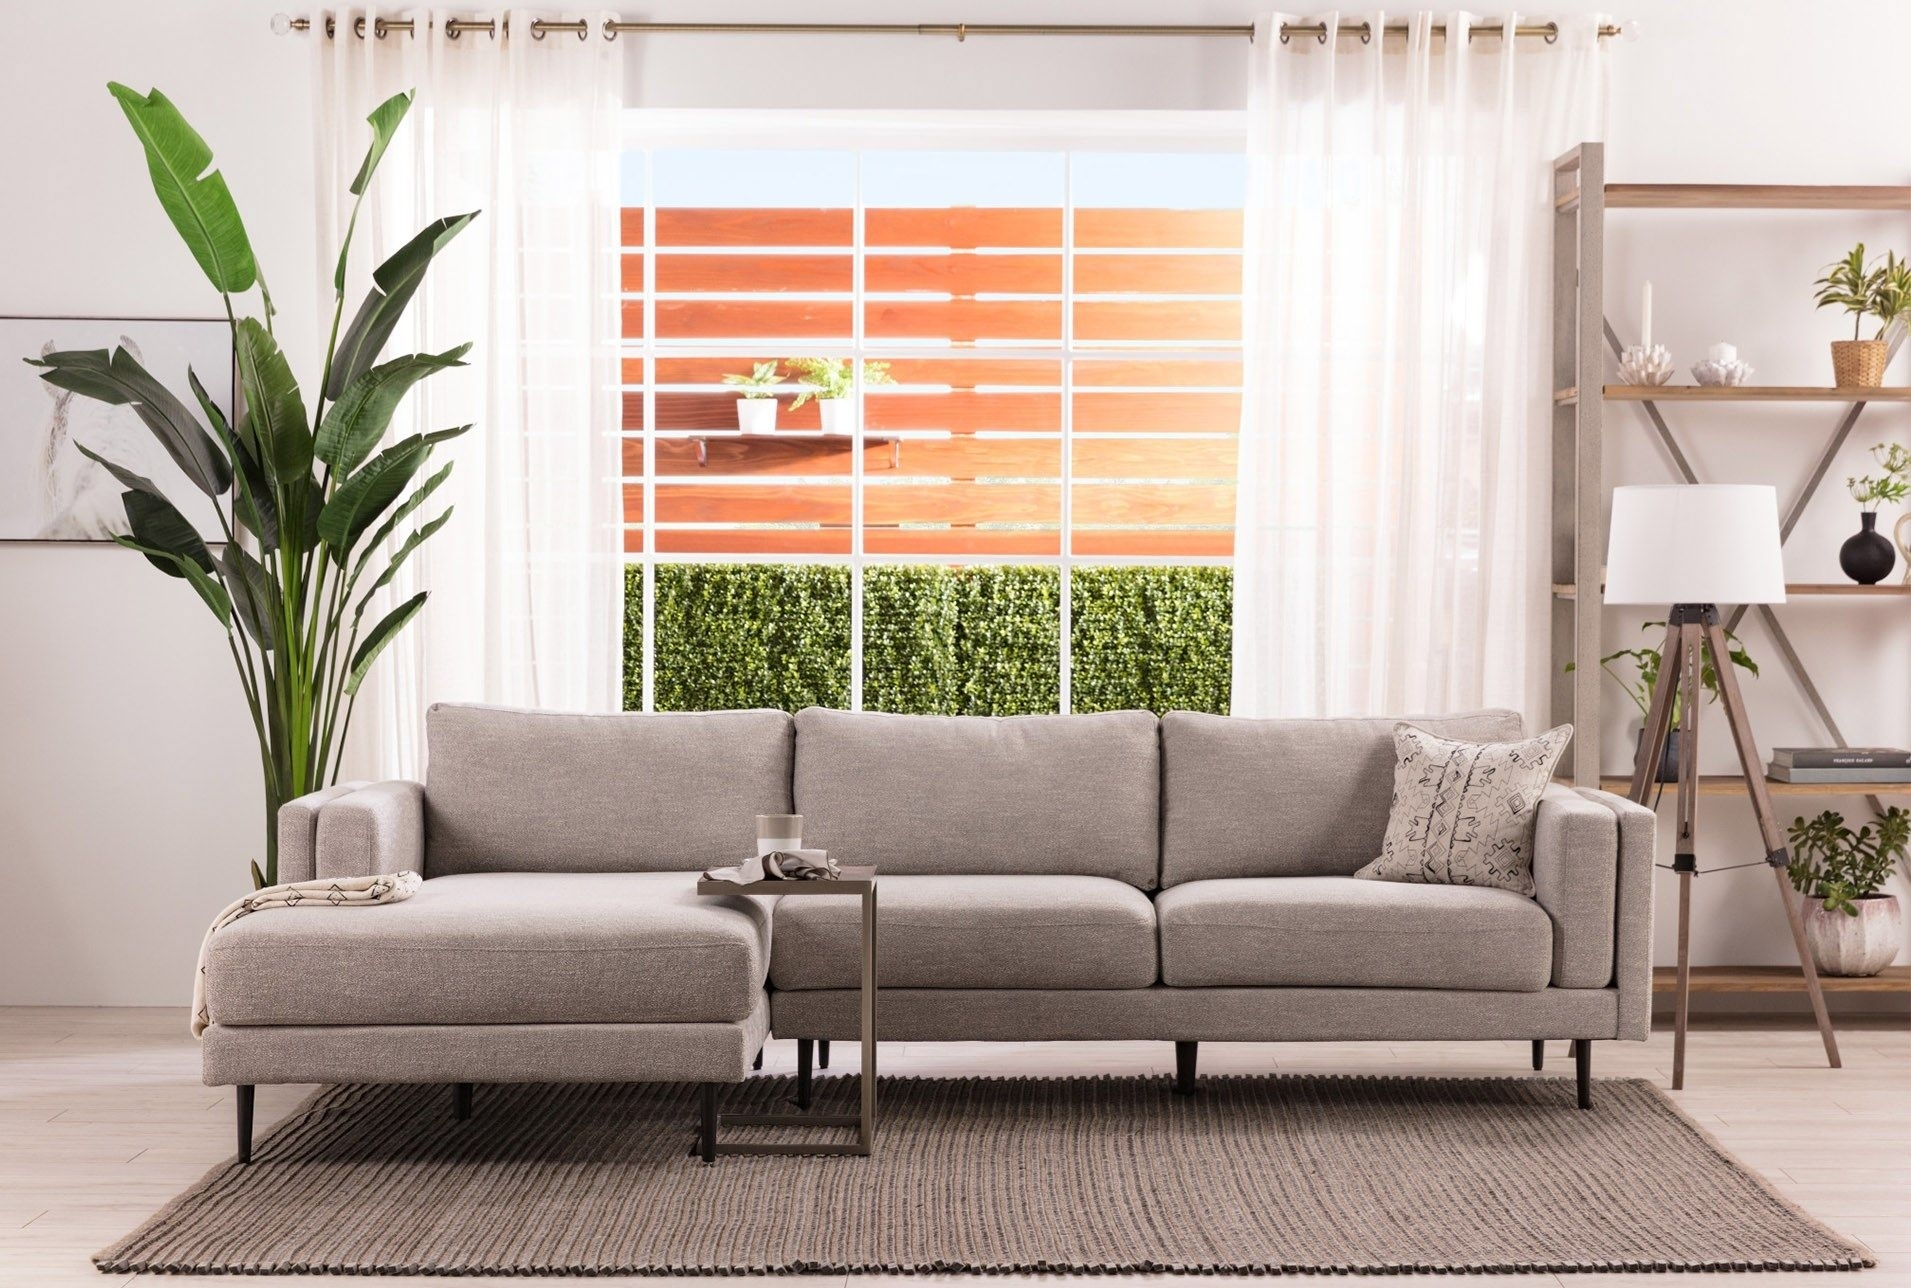 Aquarius Light Grey 2 Piece Sectional W/laf Chaise | Pinterest in Aquarius Light Grey 2 Piece Sectionals With Laf Chaise (Image 7 of 30)